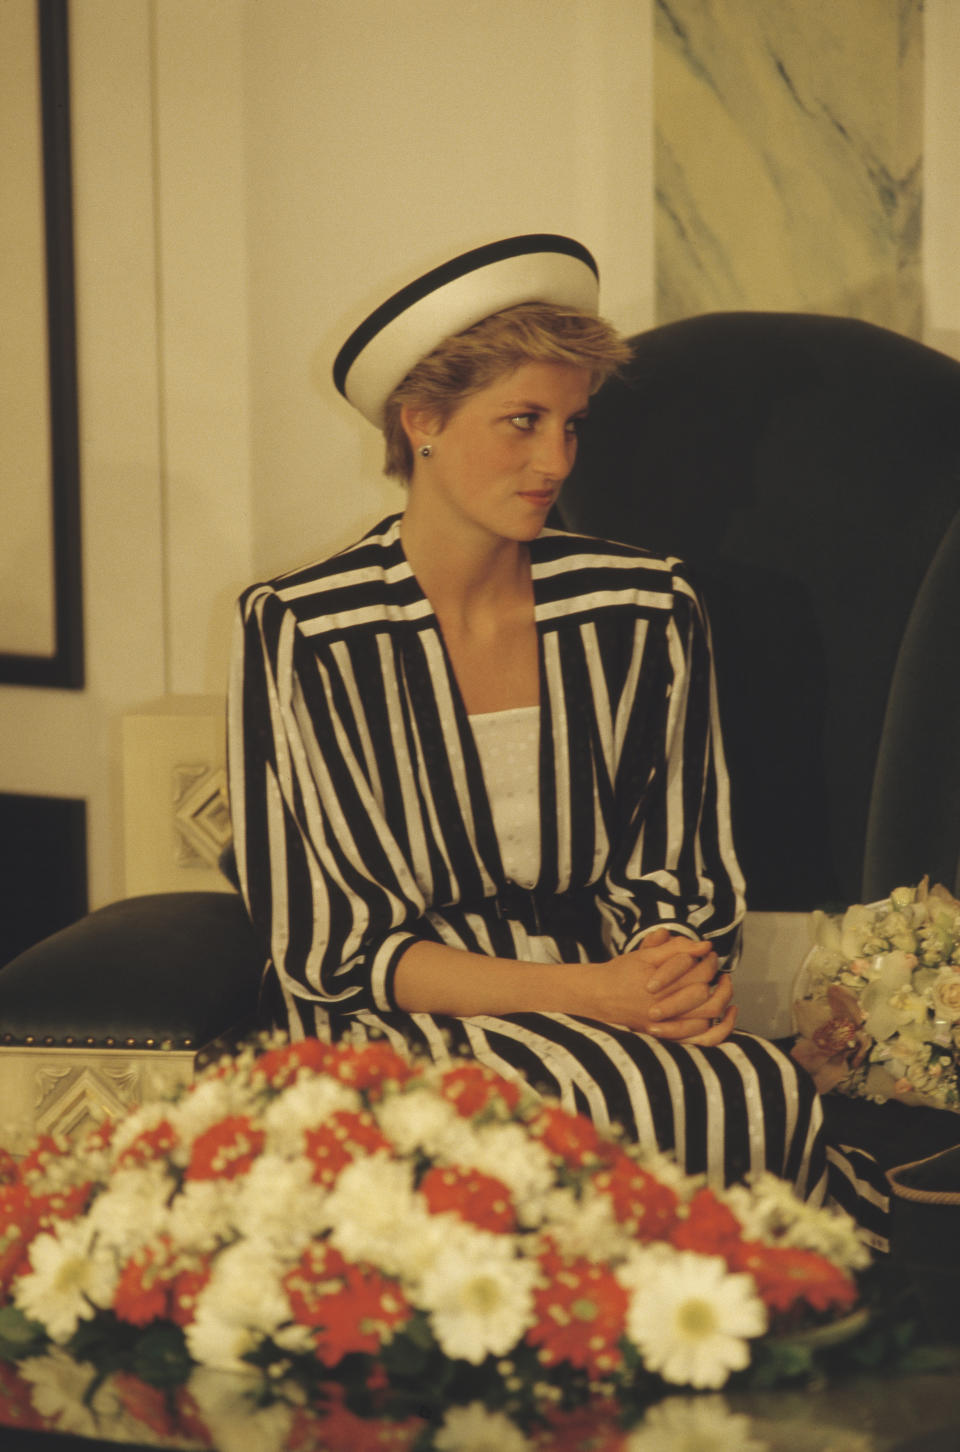 Diana, Princess of Wales  (1961 - 1997) wearing an Emanuel dress upon her arrival at Bahrain airport, November 1986. (Photo by Jayne Fincher/Princess Diana Archive/Getty Images)